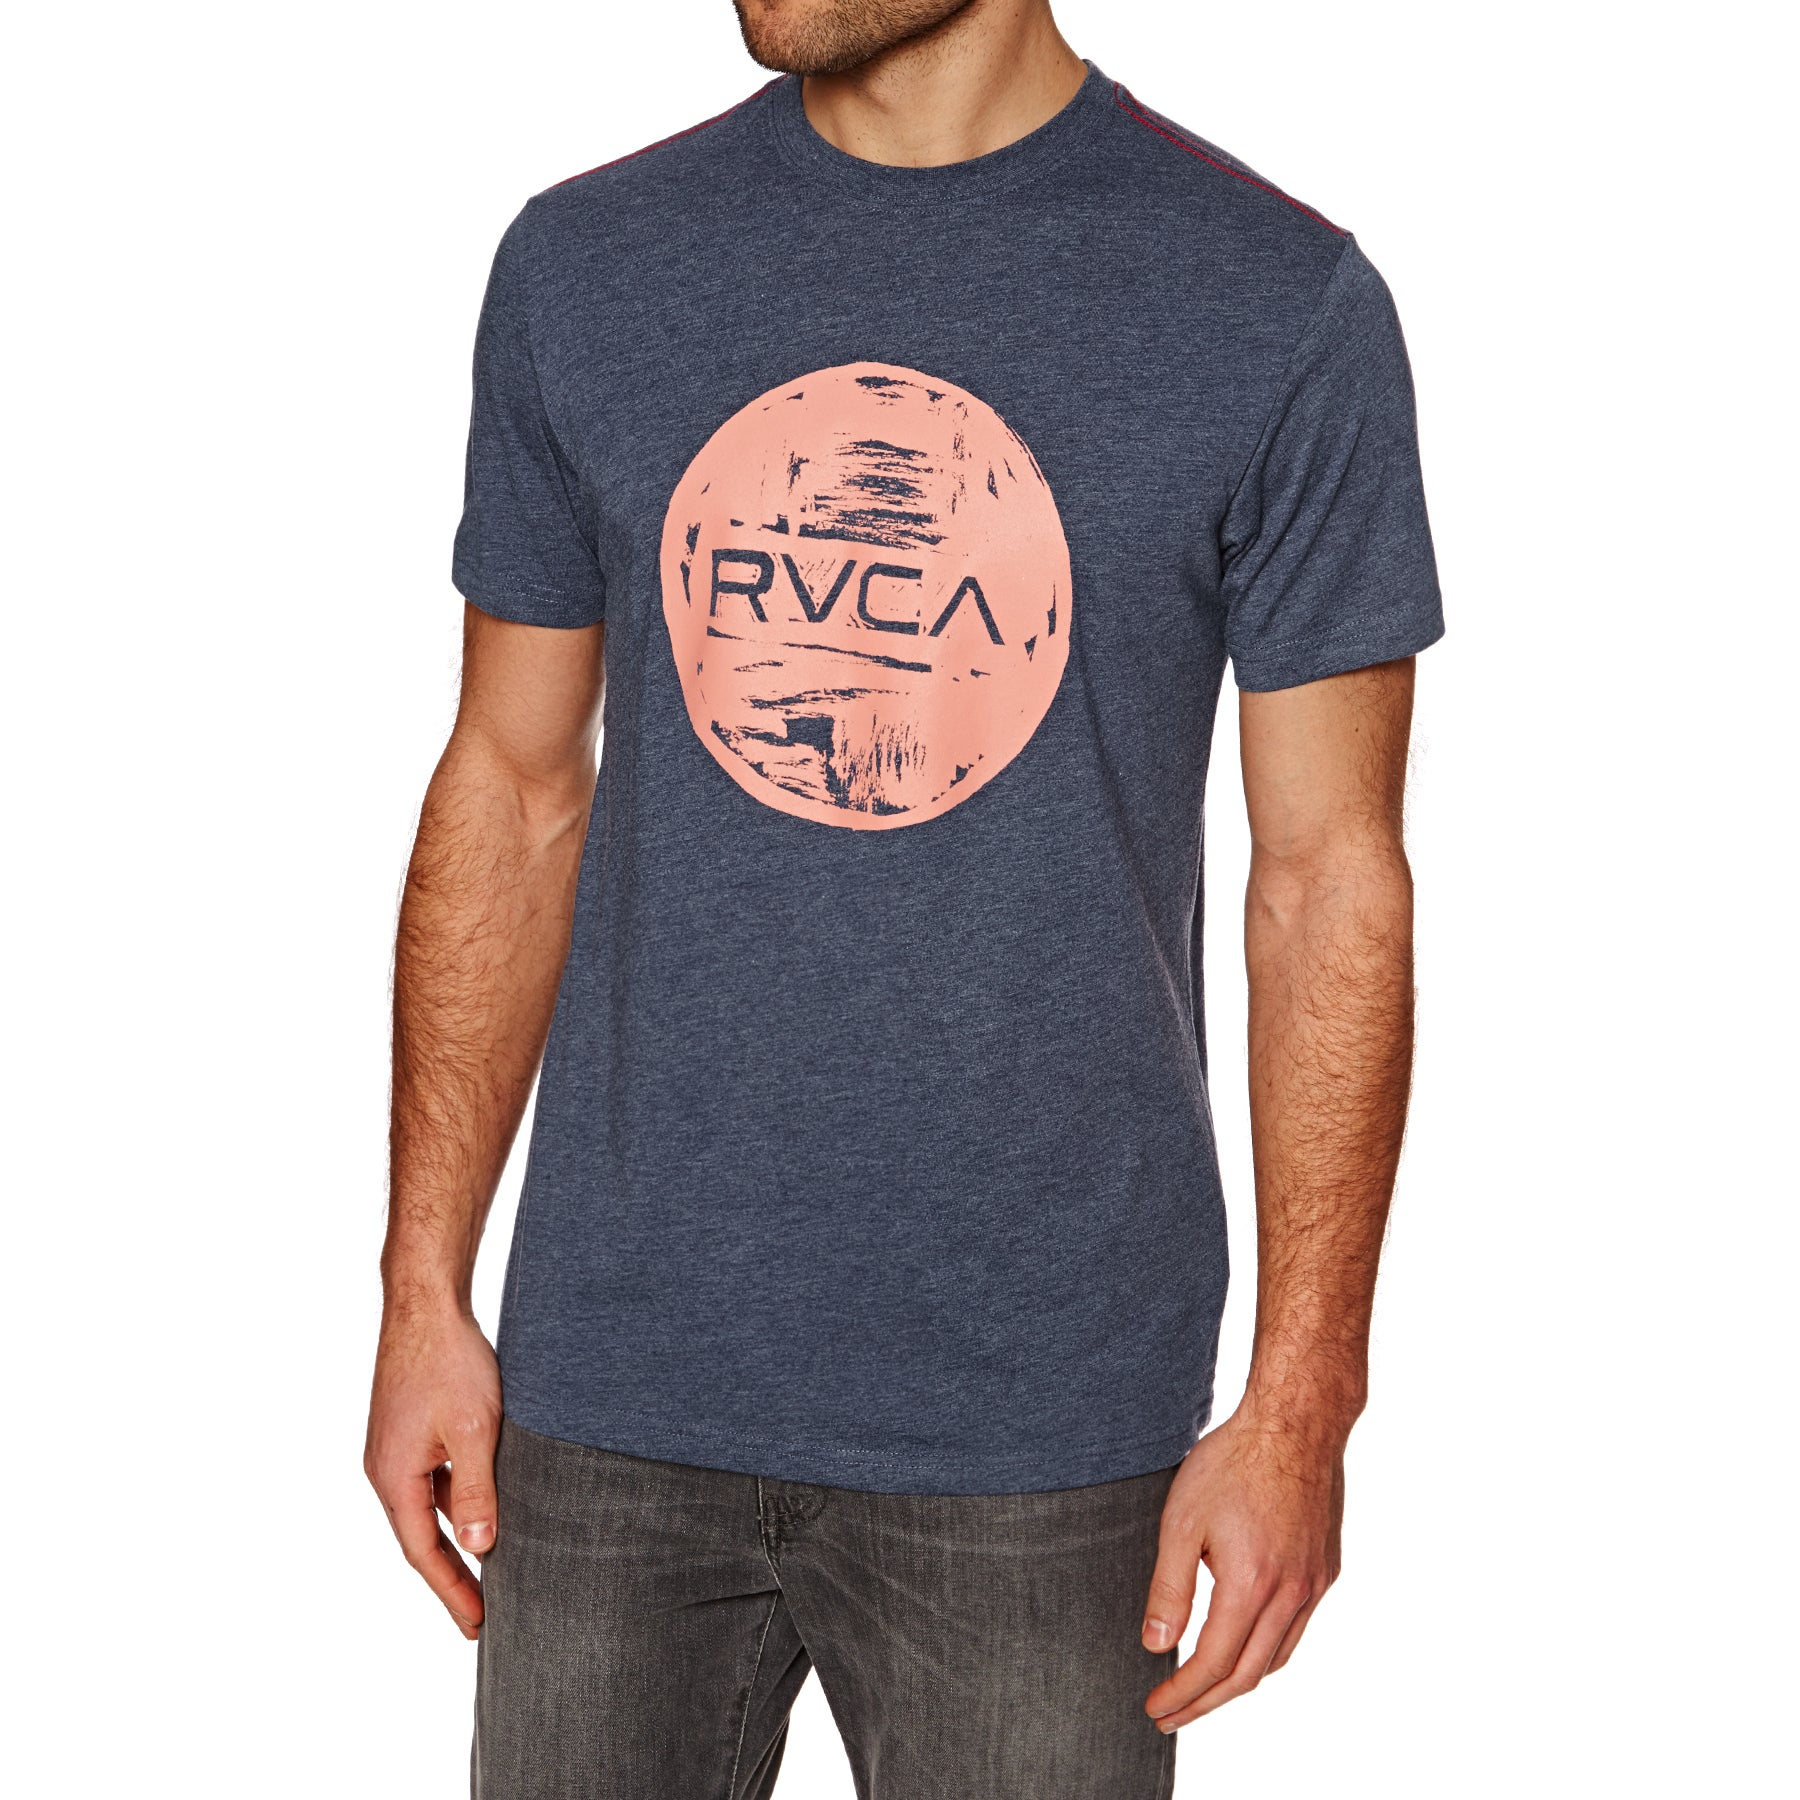 RVCA Motors Kurzarm-T-Shirt - Dark Denim